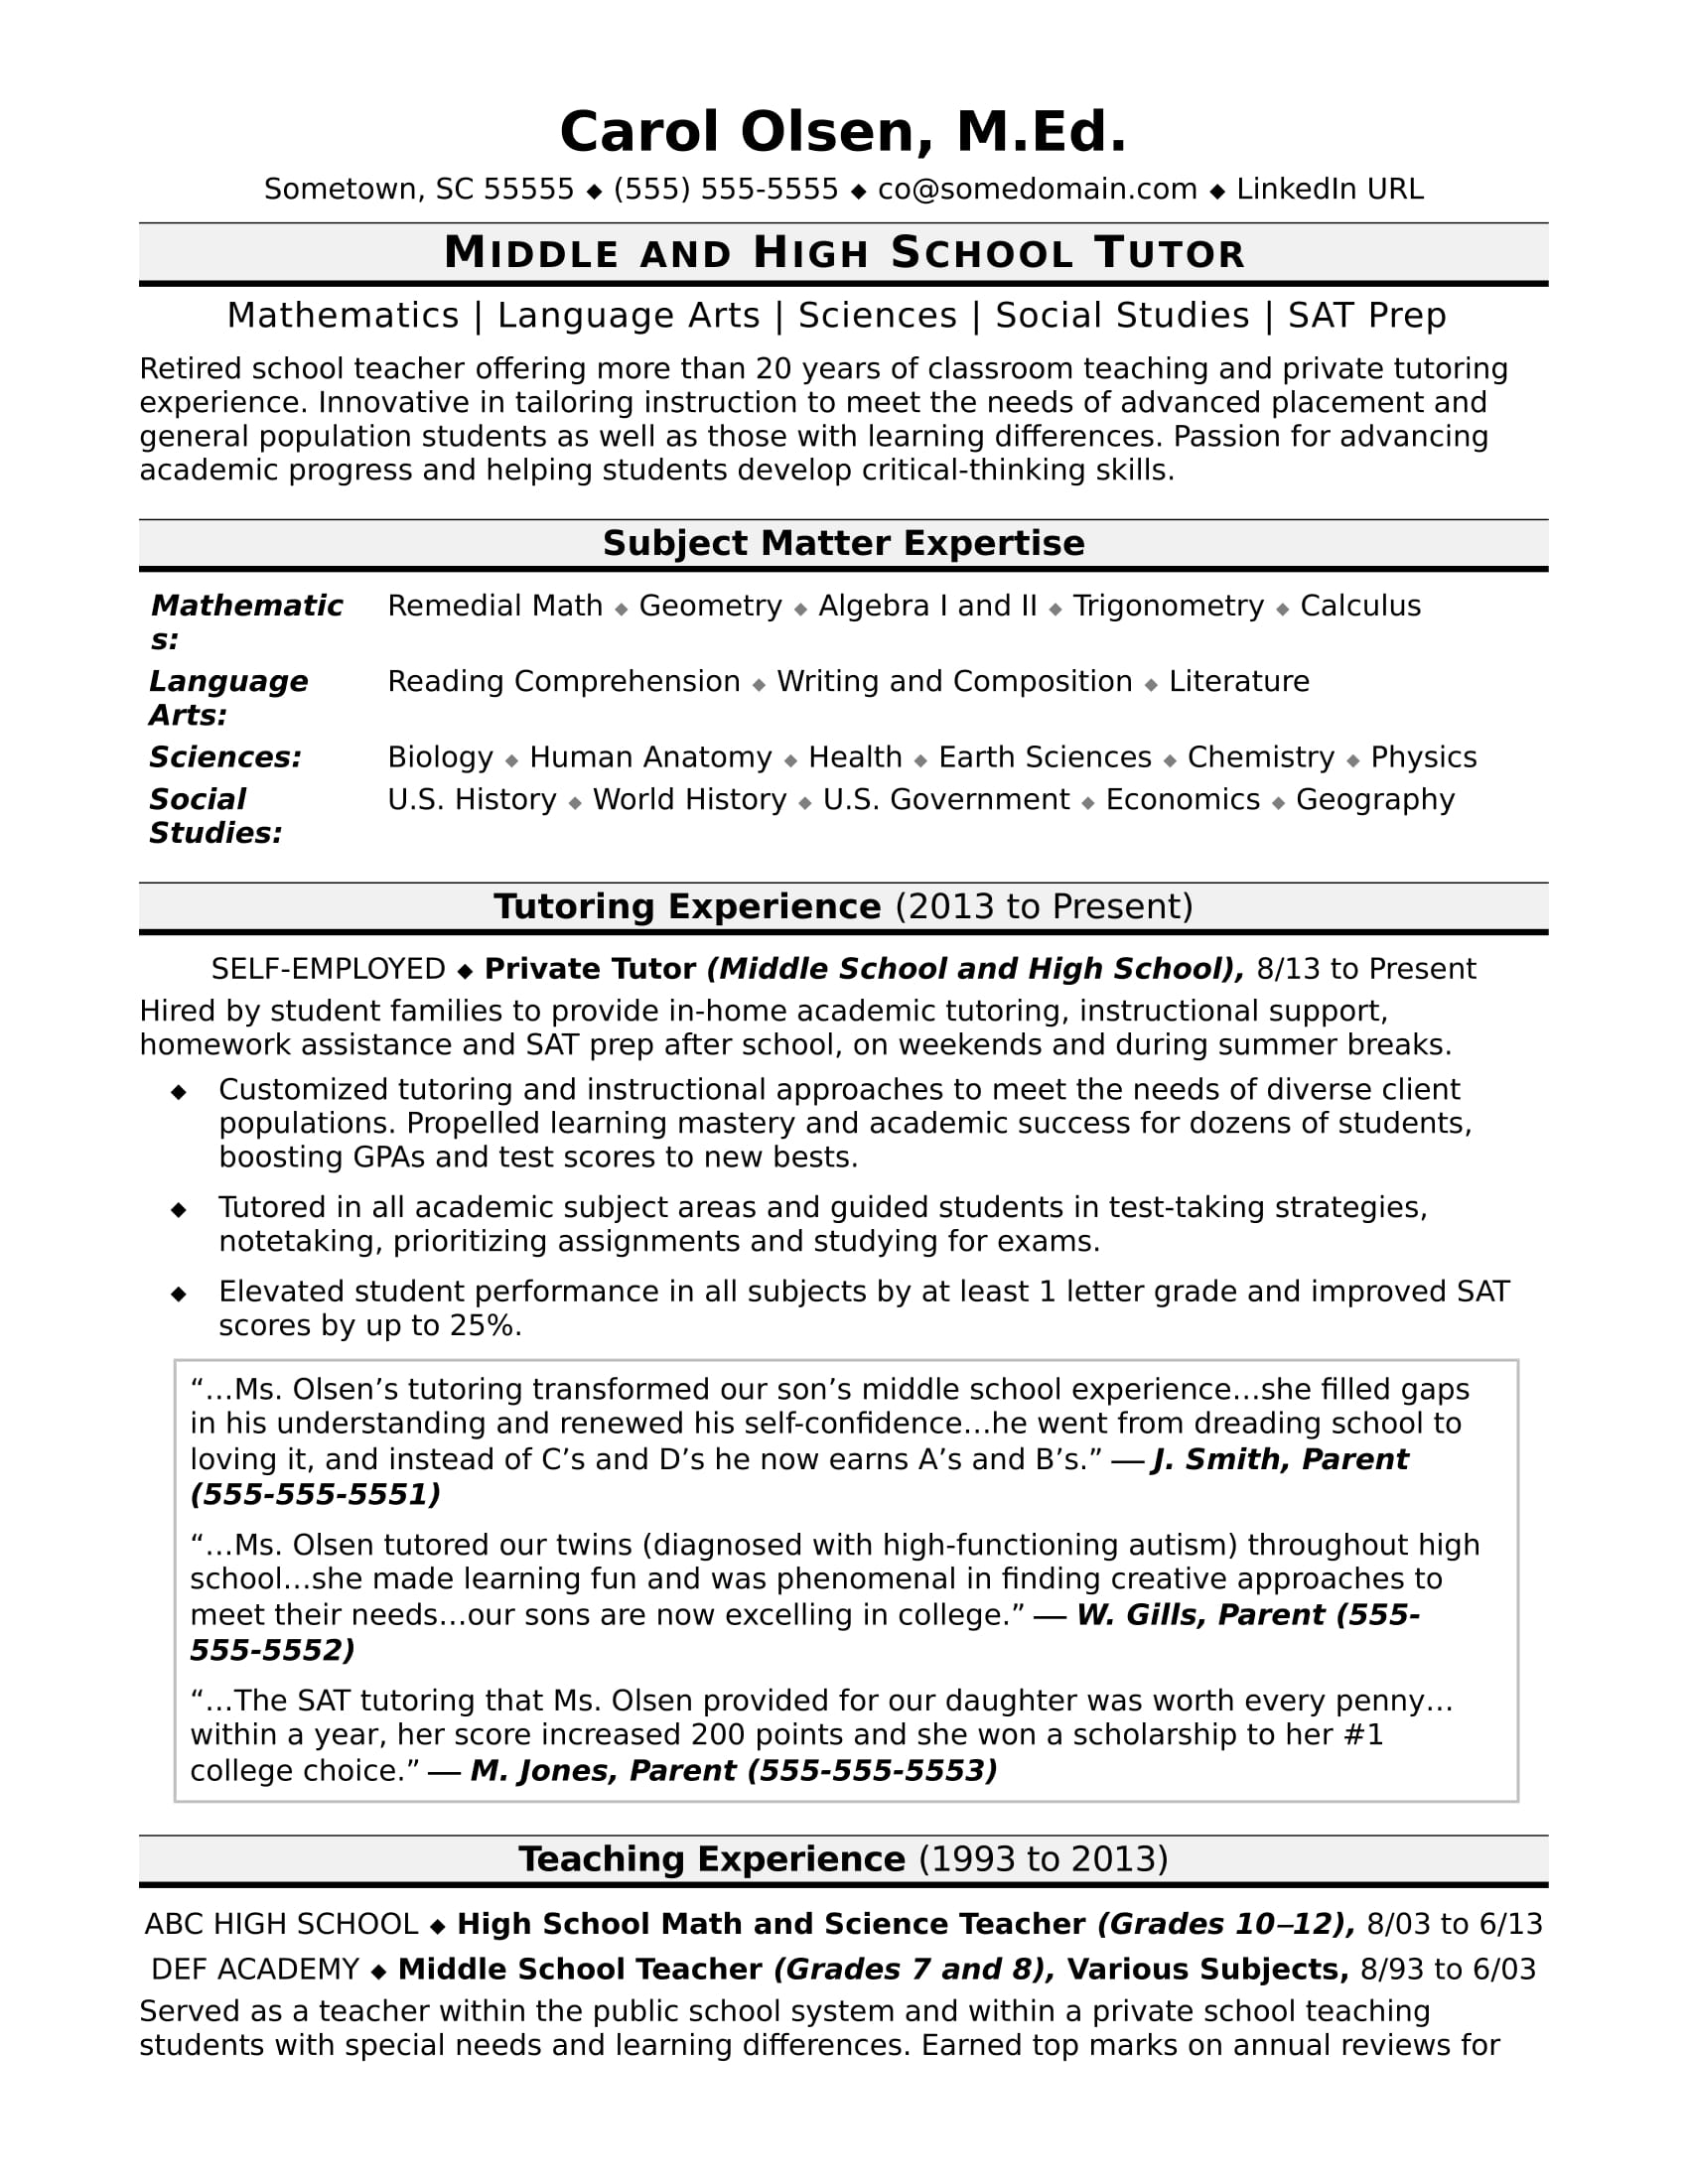 tutor resume sample monster another word for on mini websphere cls well test operator Resume Another Word For Tutor On Resume